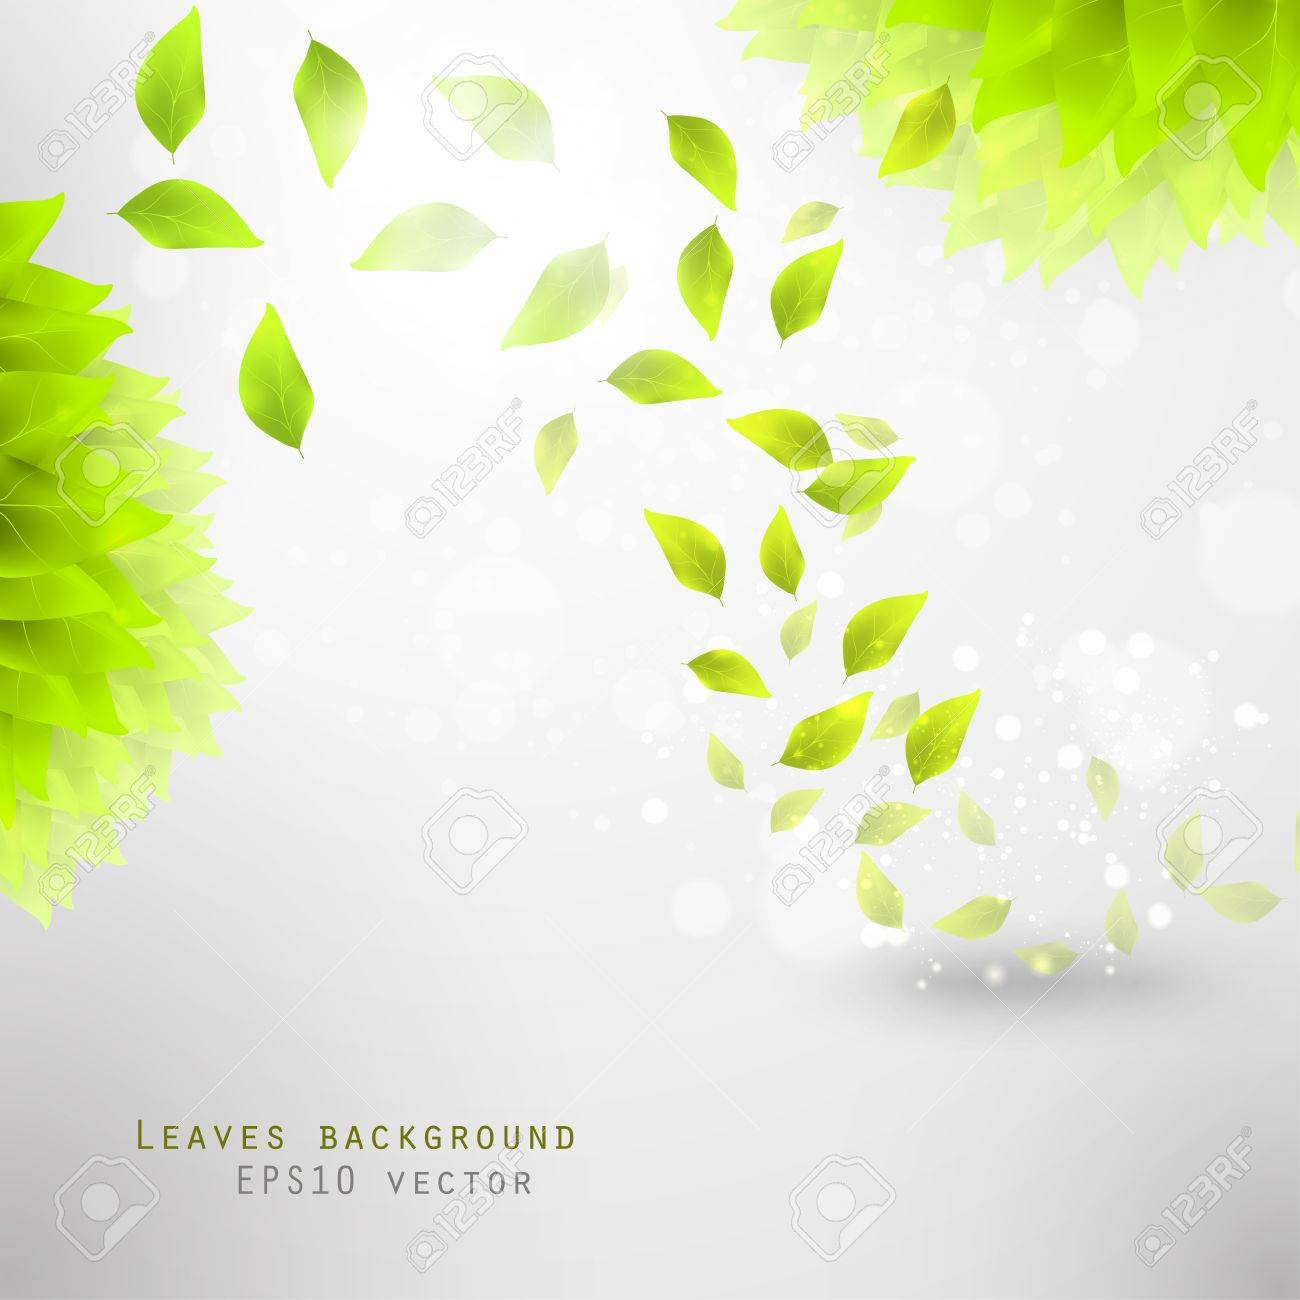 green leaves, eco background eps10 - 12084498